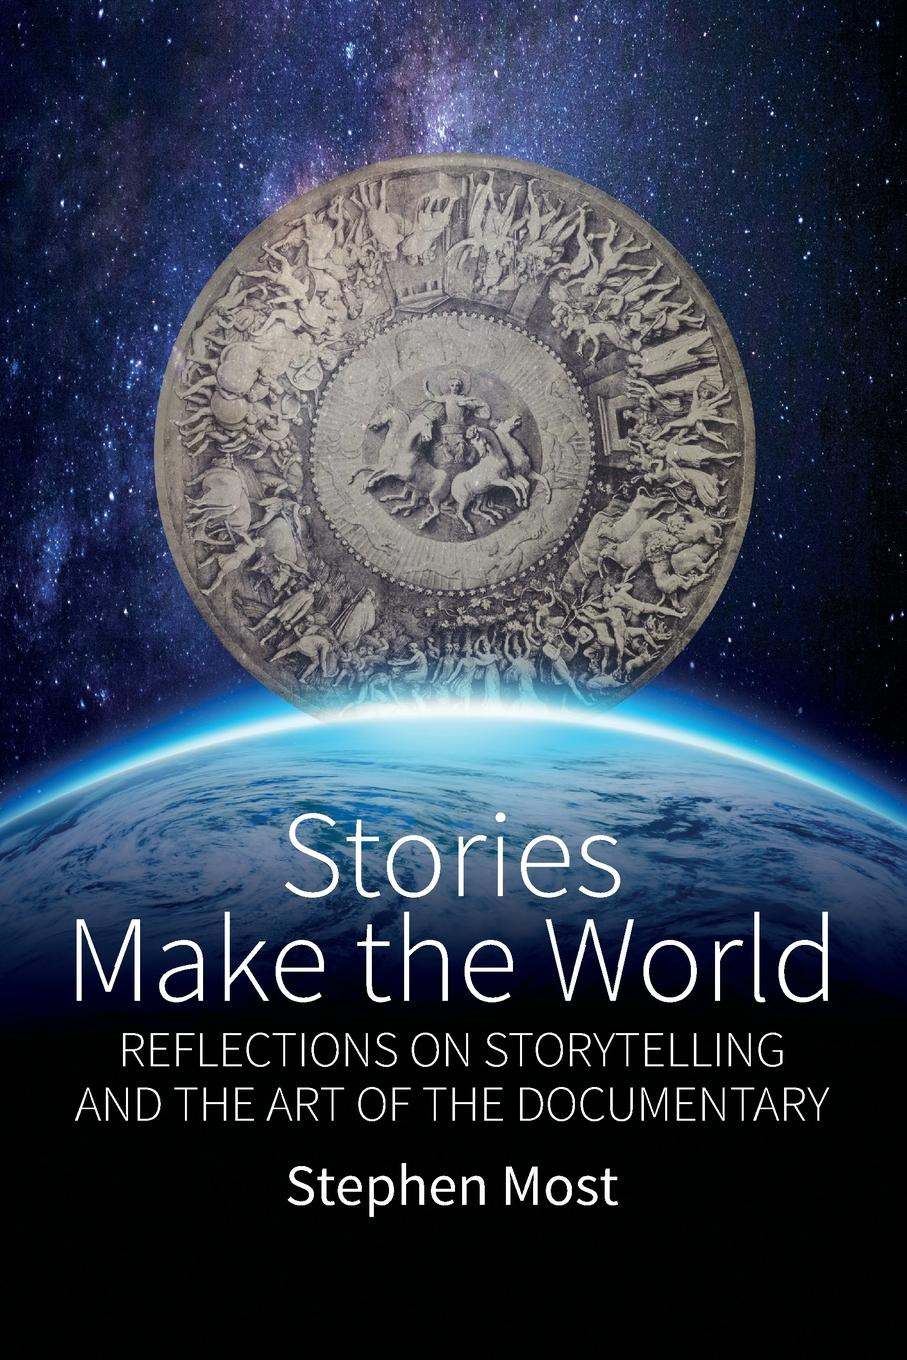 Stephen Most. Stories Make the World. Reflections on Storytelling and the Art of the Documentary